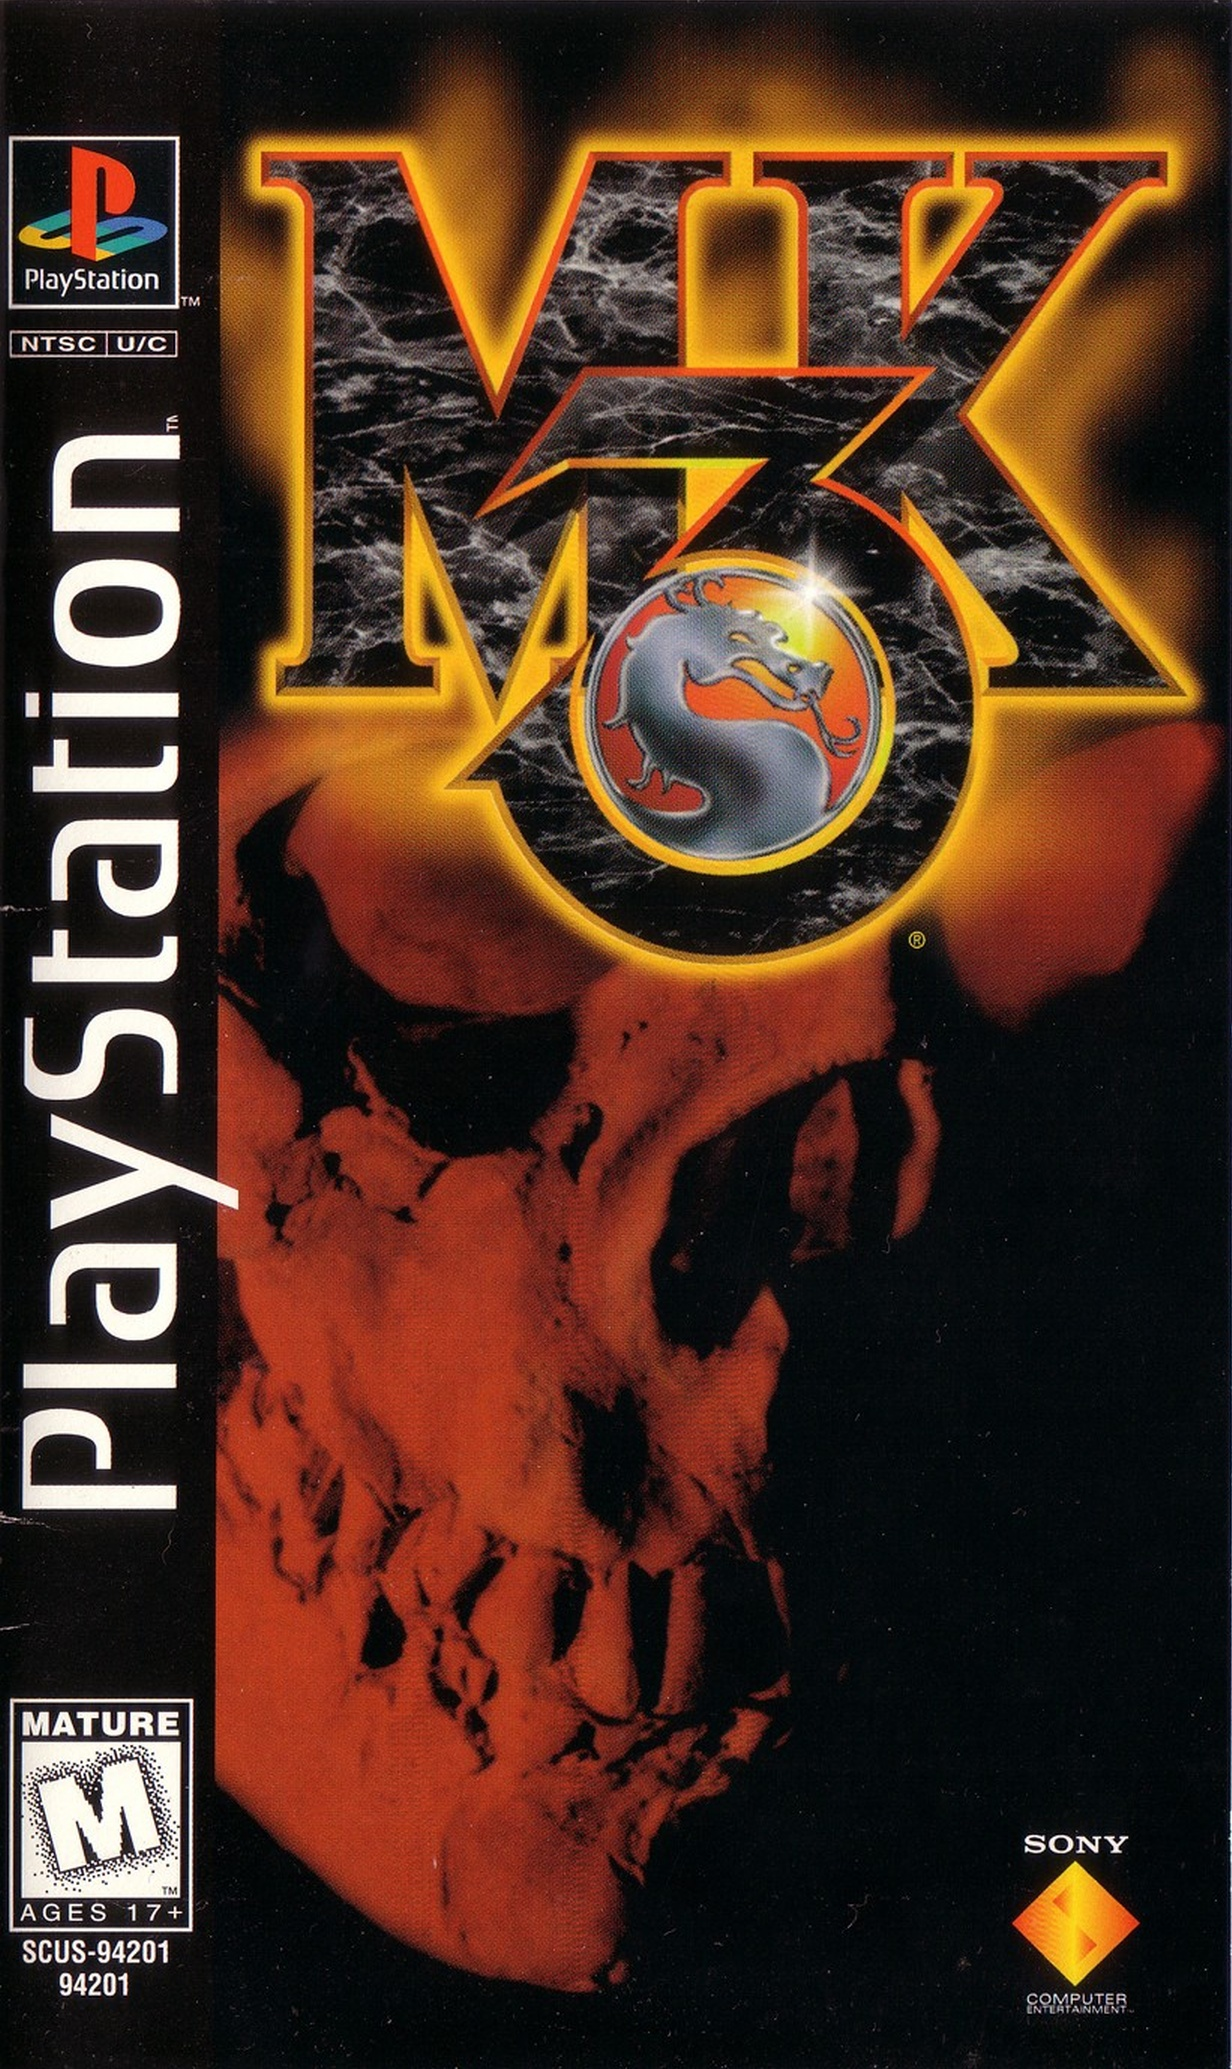 Mortal Kombat Trilogy [SLUS-00330] ROM - Playstation (PS1